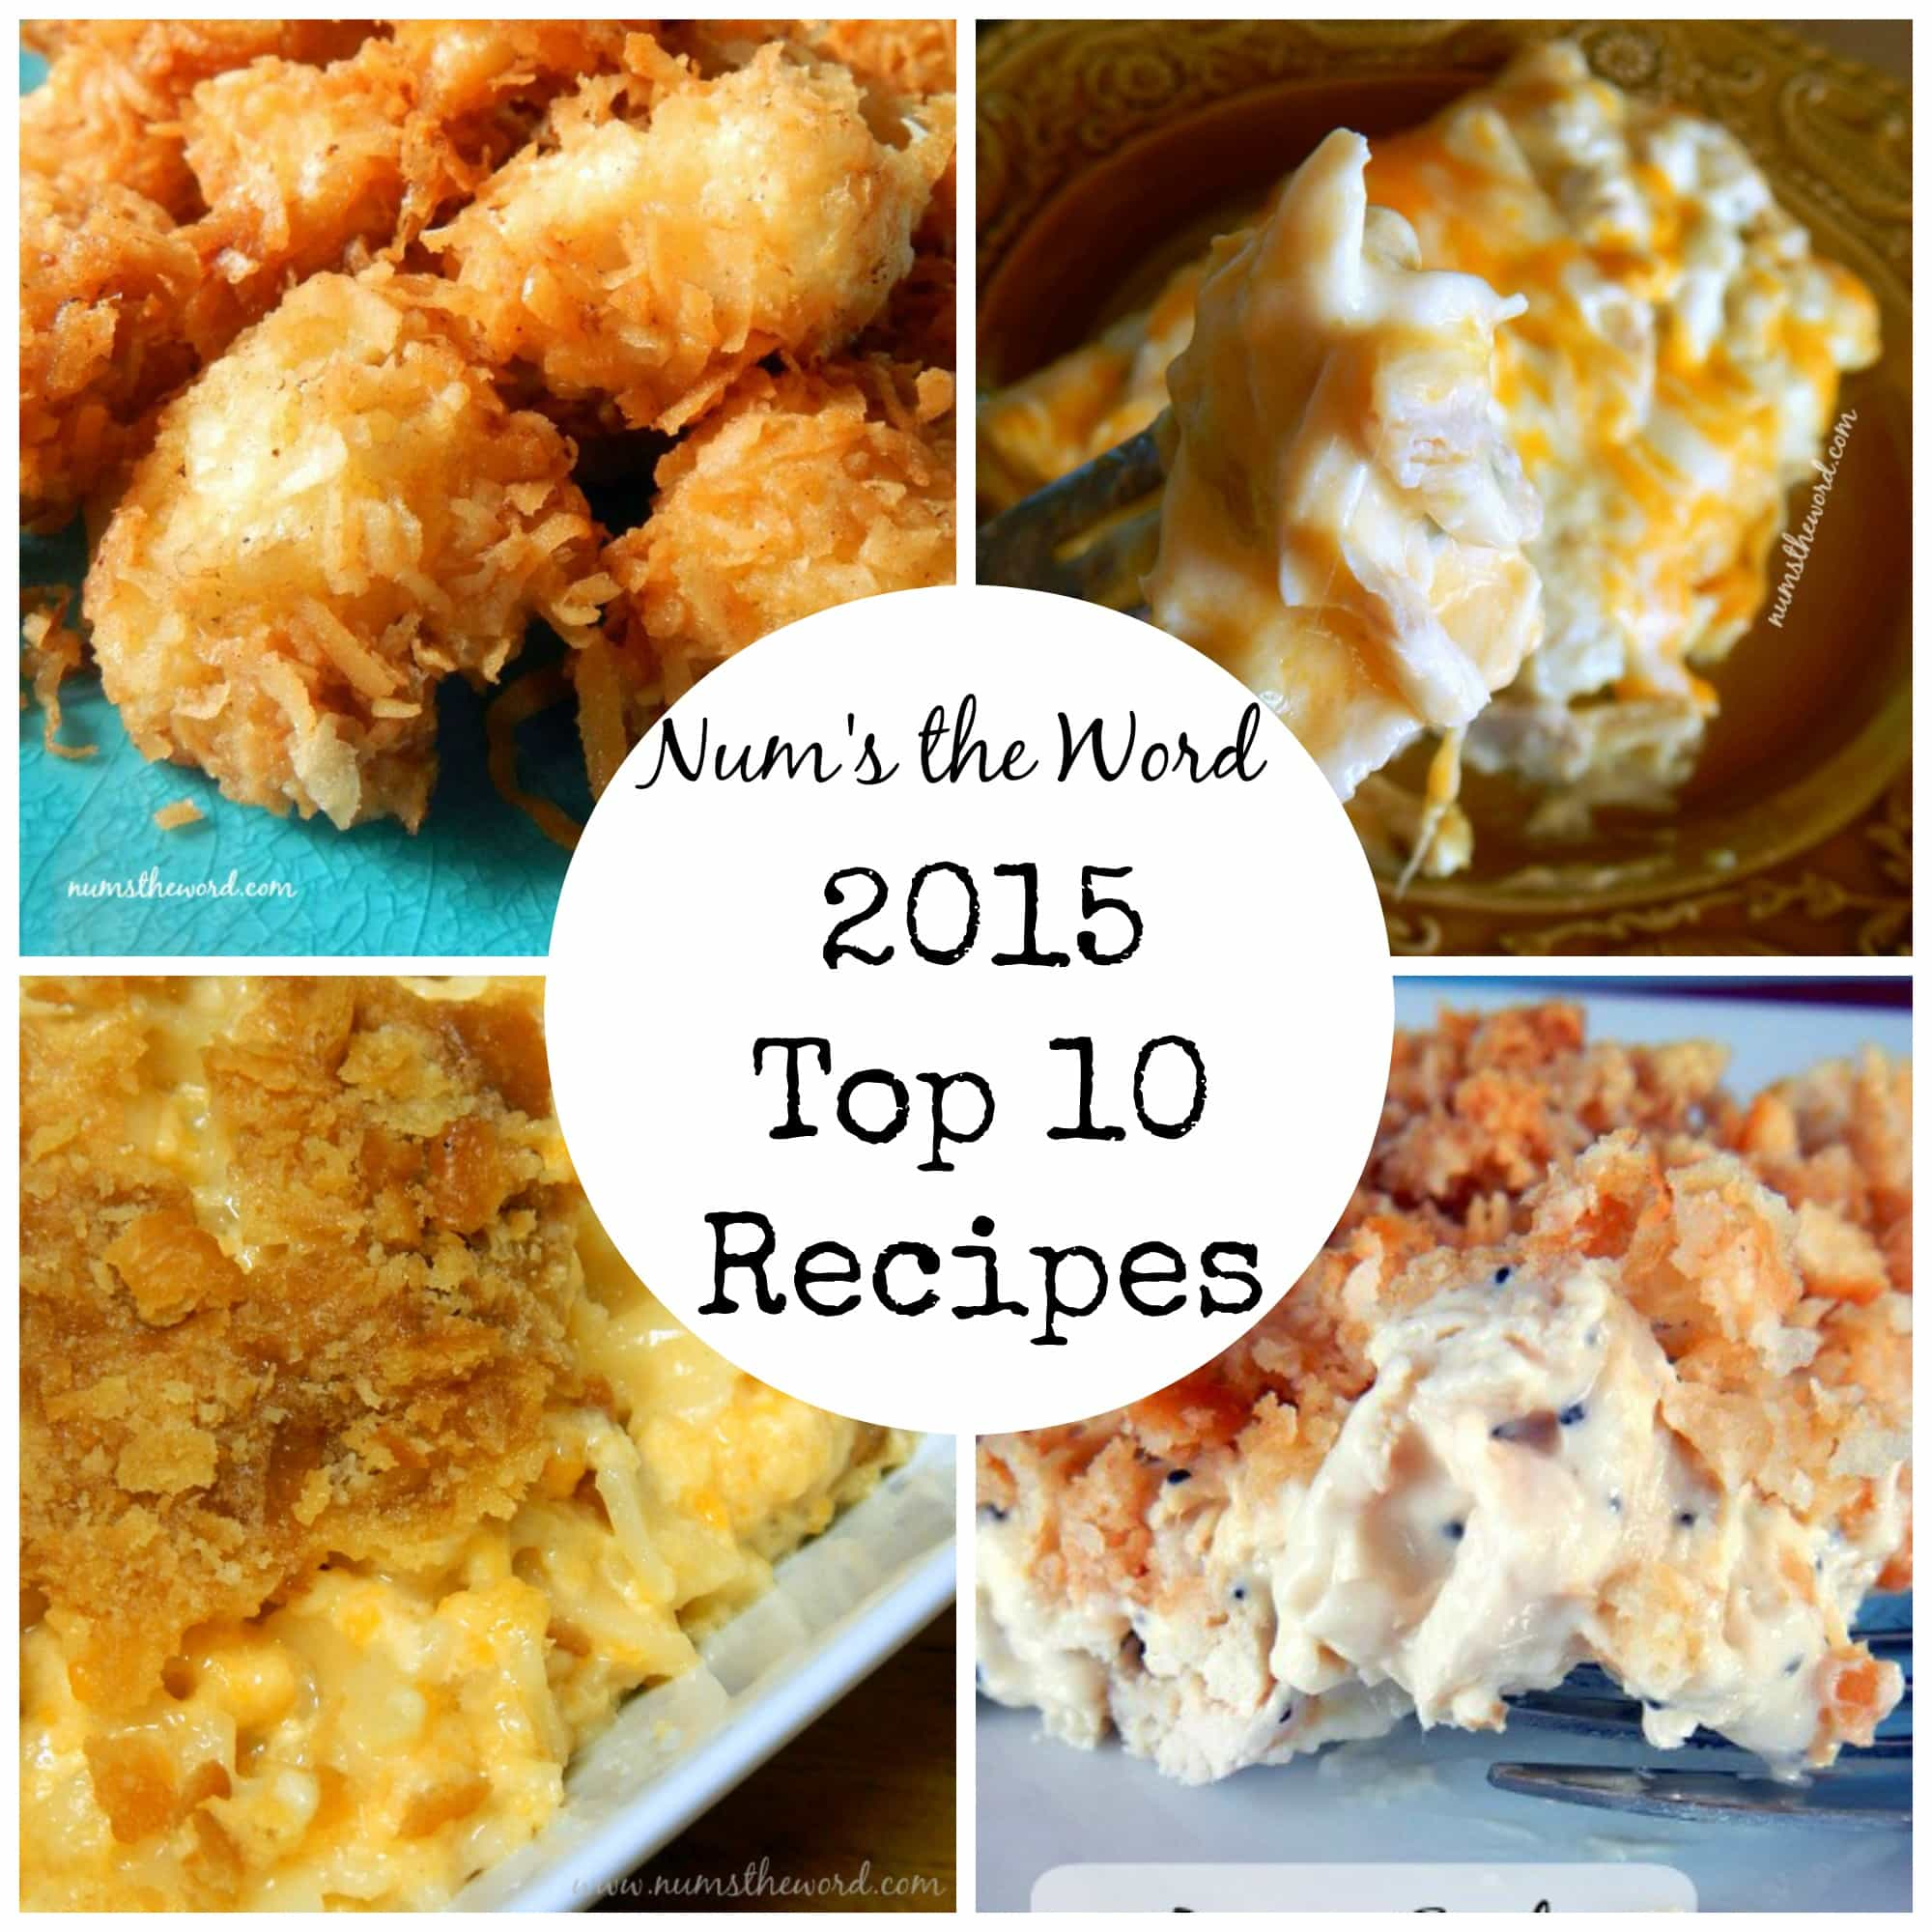 2015 Top 10 Recipes